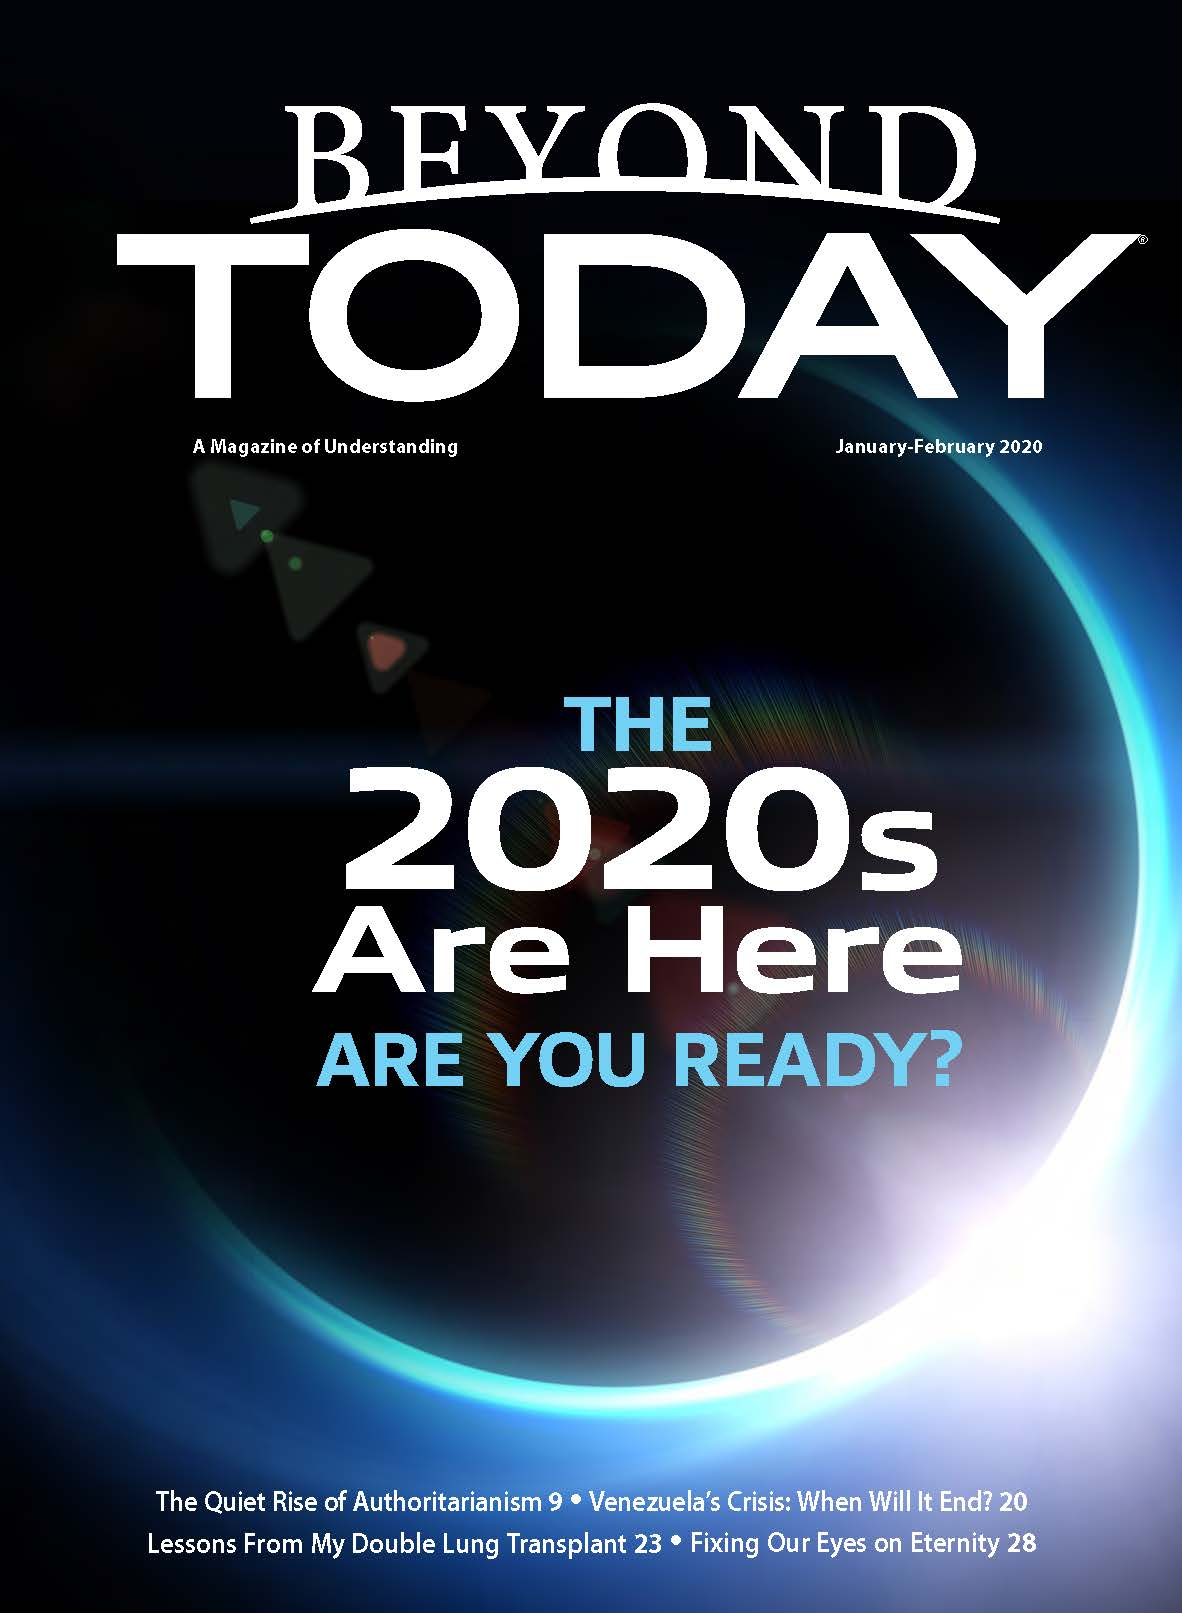 Beyond Today magazine cover